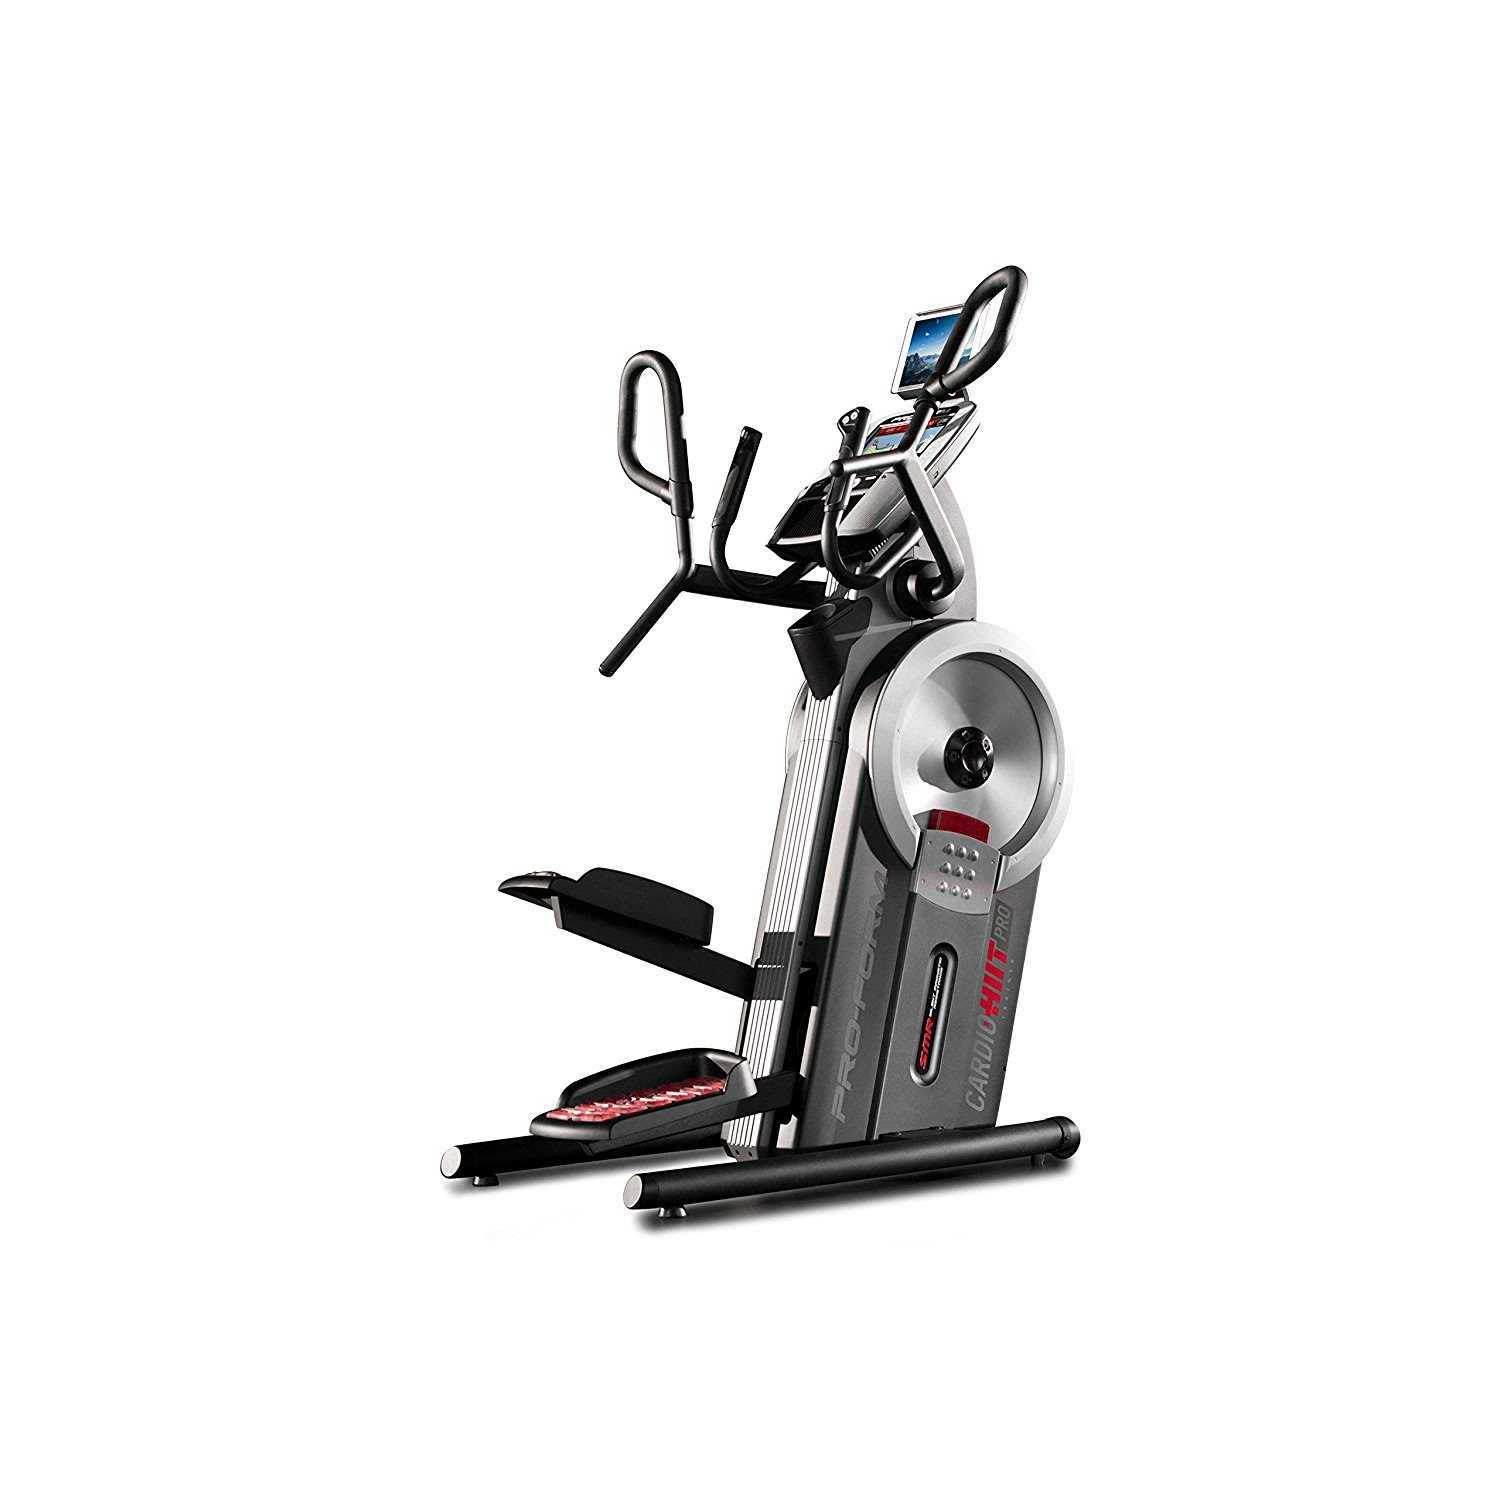 Home Gym Zone: Comparing ProForm Cardio HIIT Trainer Pro